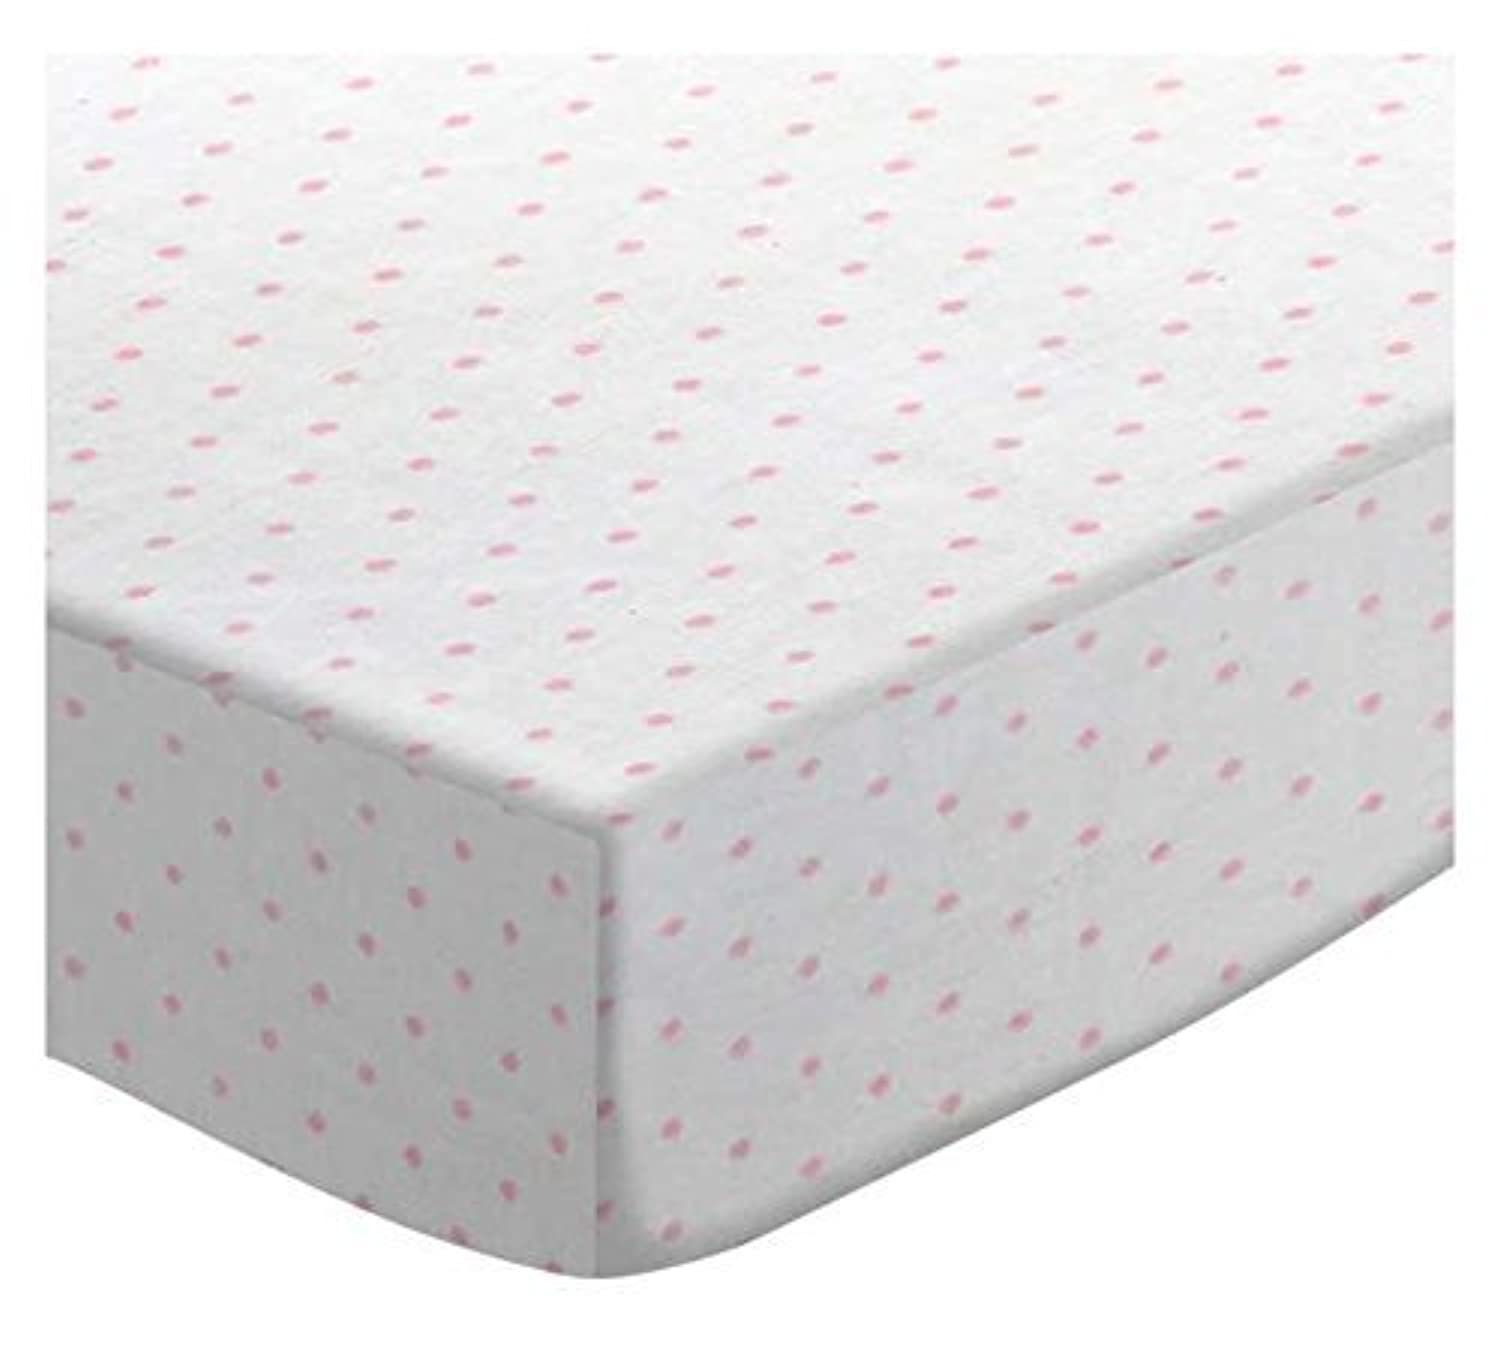 SheetWorld Fitted Pack N Play (Graco) Sheet - Pink Pindot Jersey Knit - Made In USA [並行輸入品]